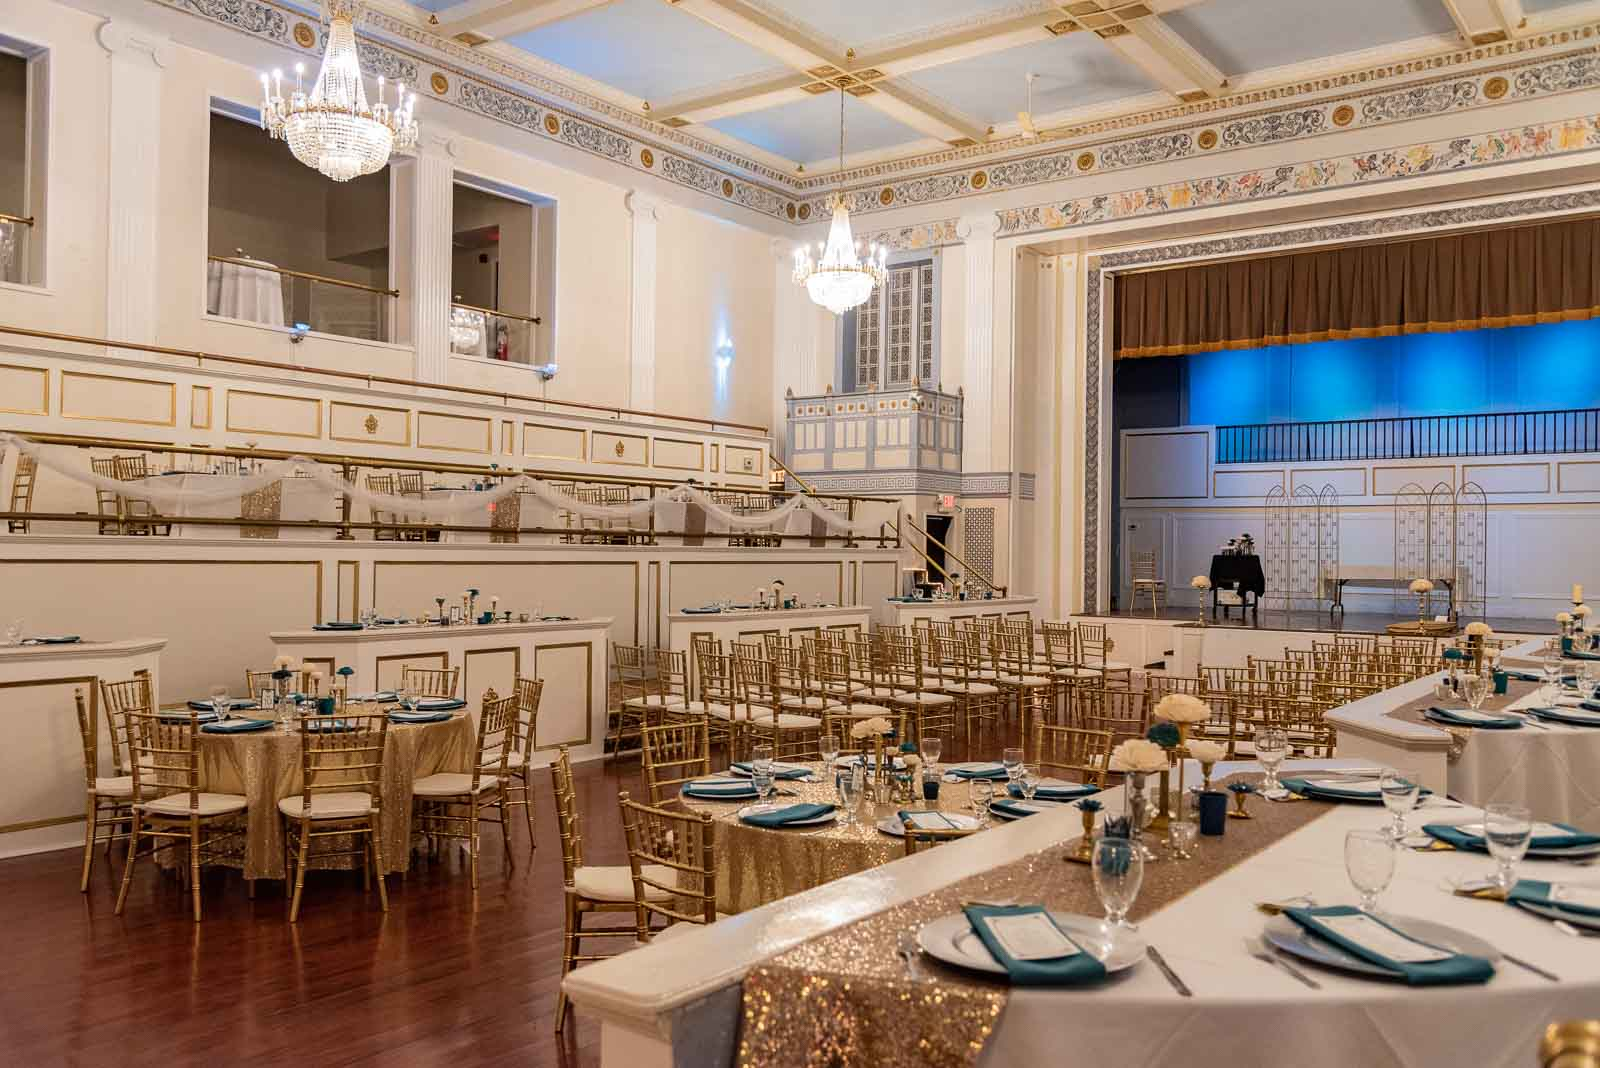 Corporate Party The oppulent and beautiful Crystal Ballroom.